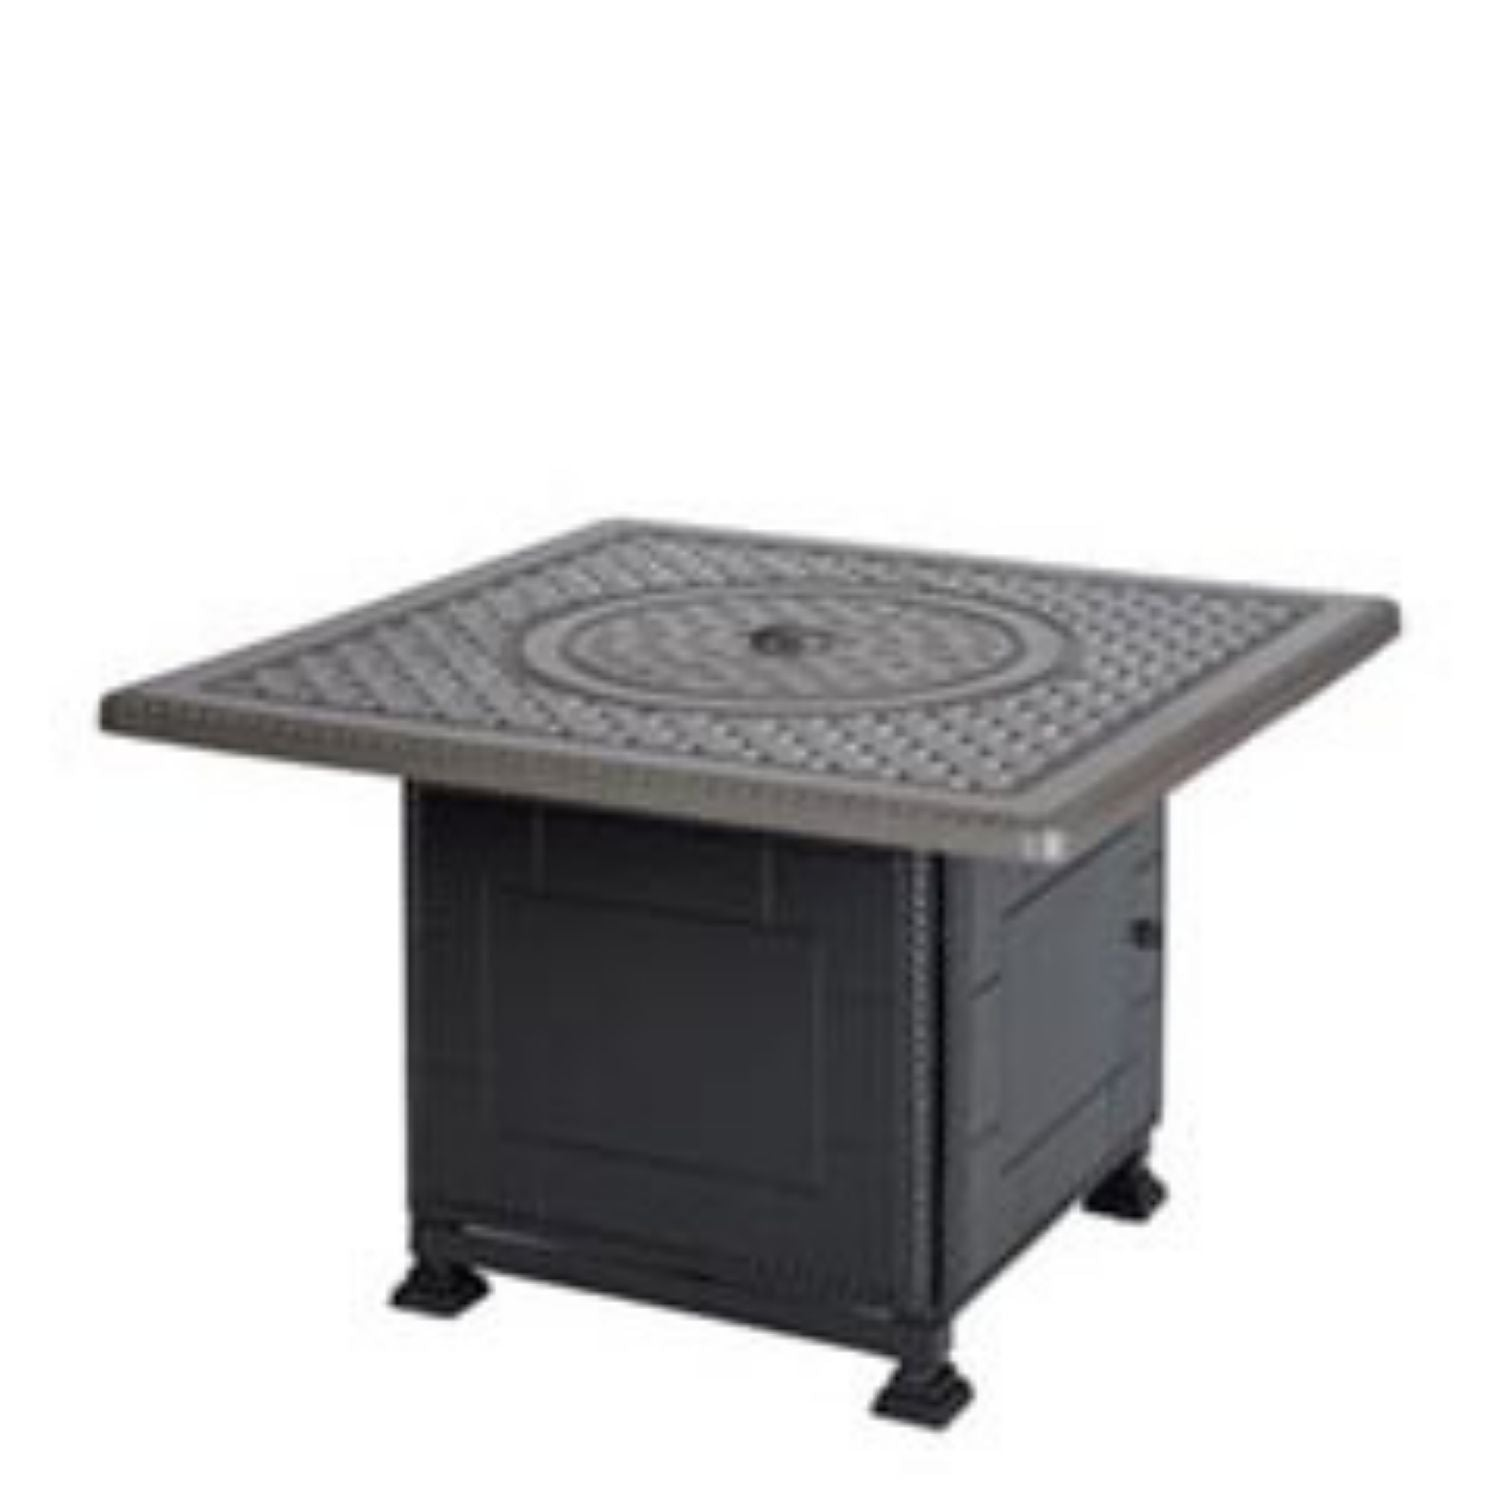 "Grand Terrace 42"" Square Fire Table"